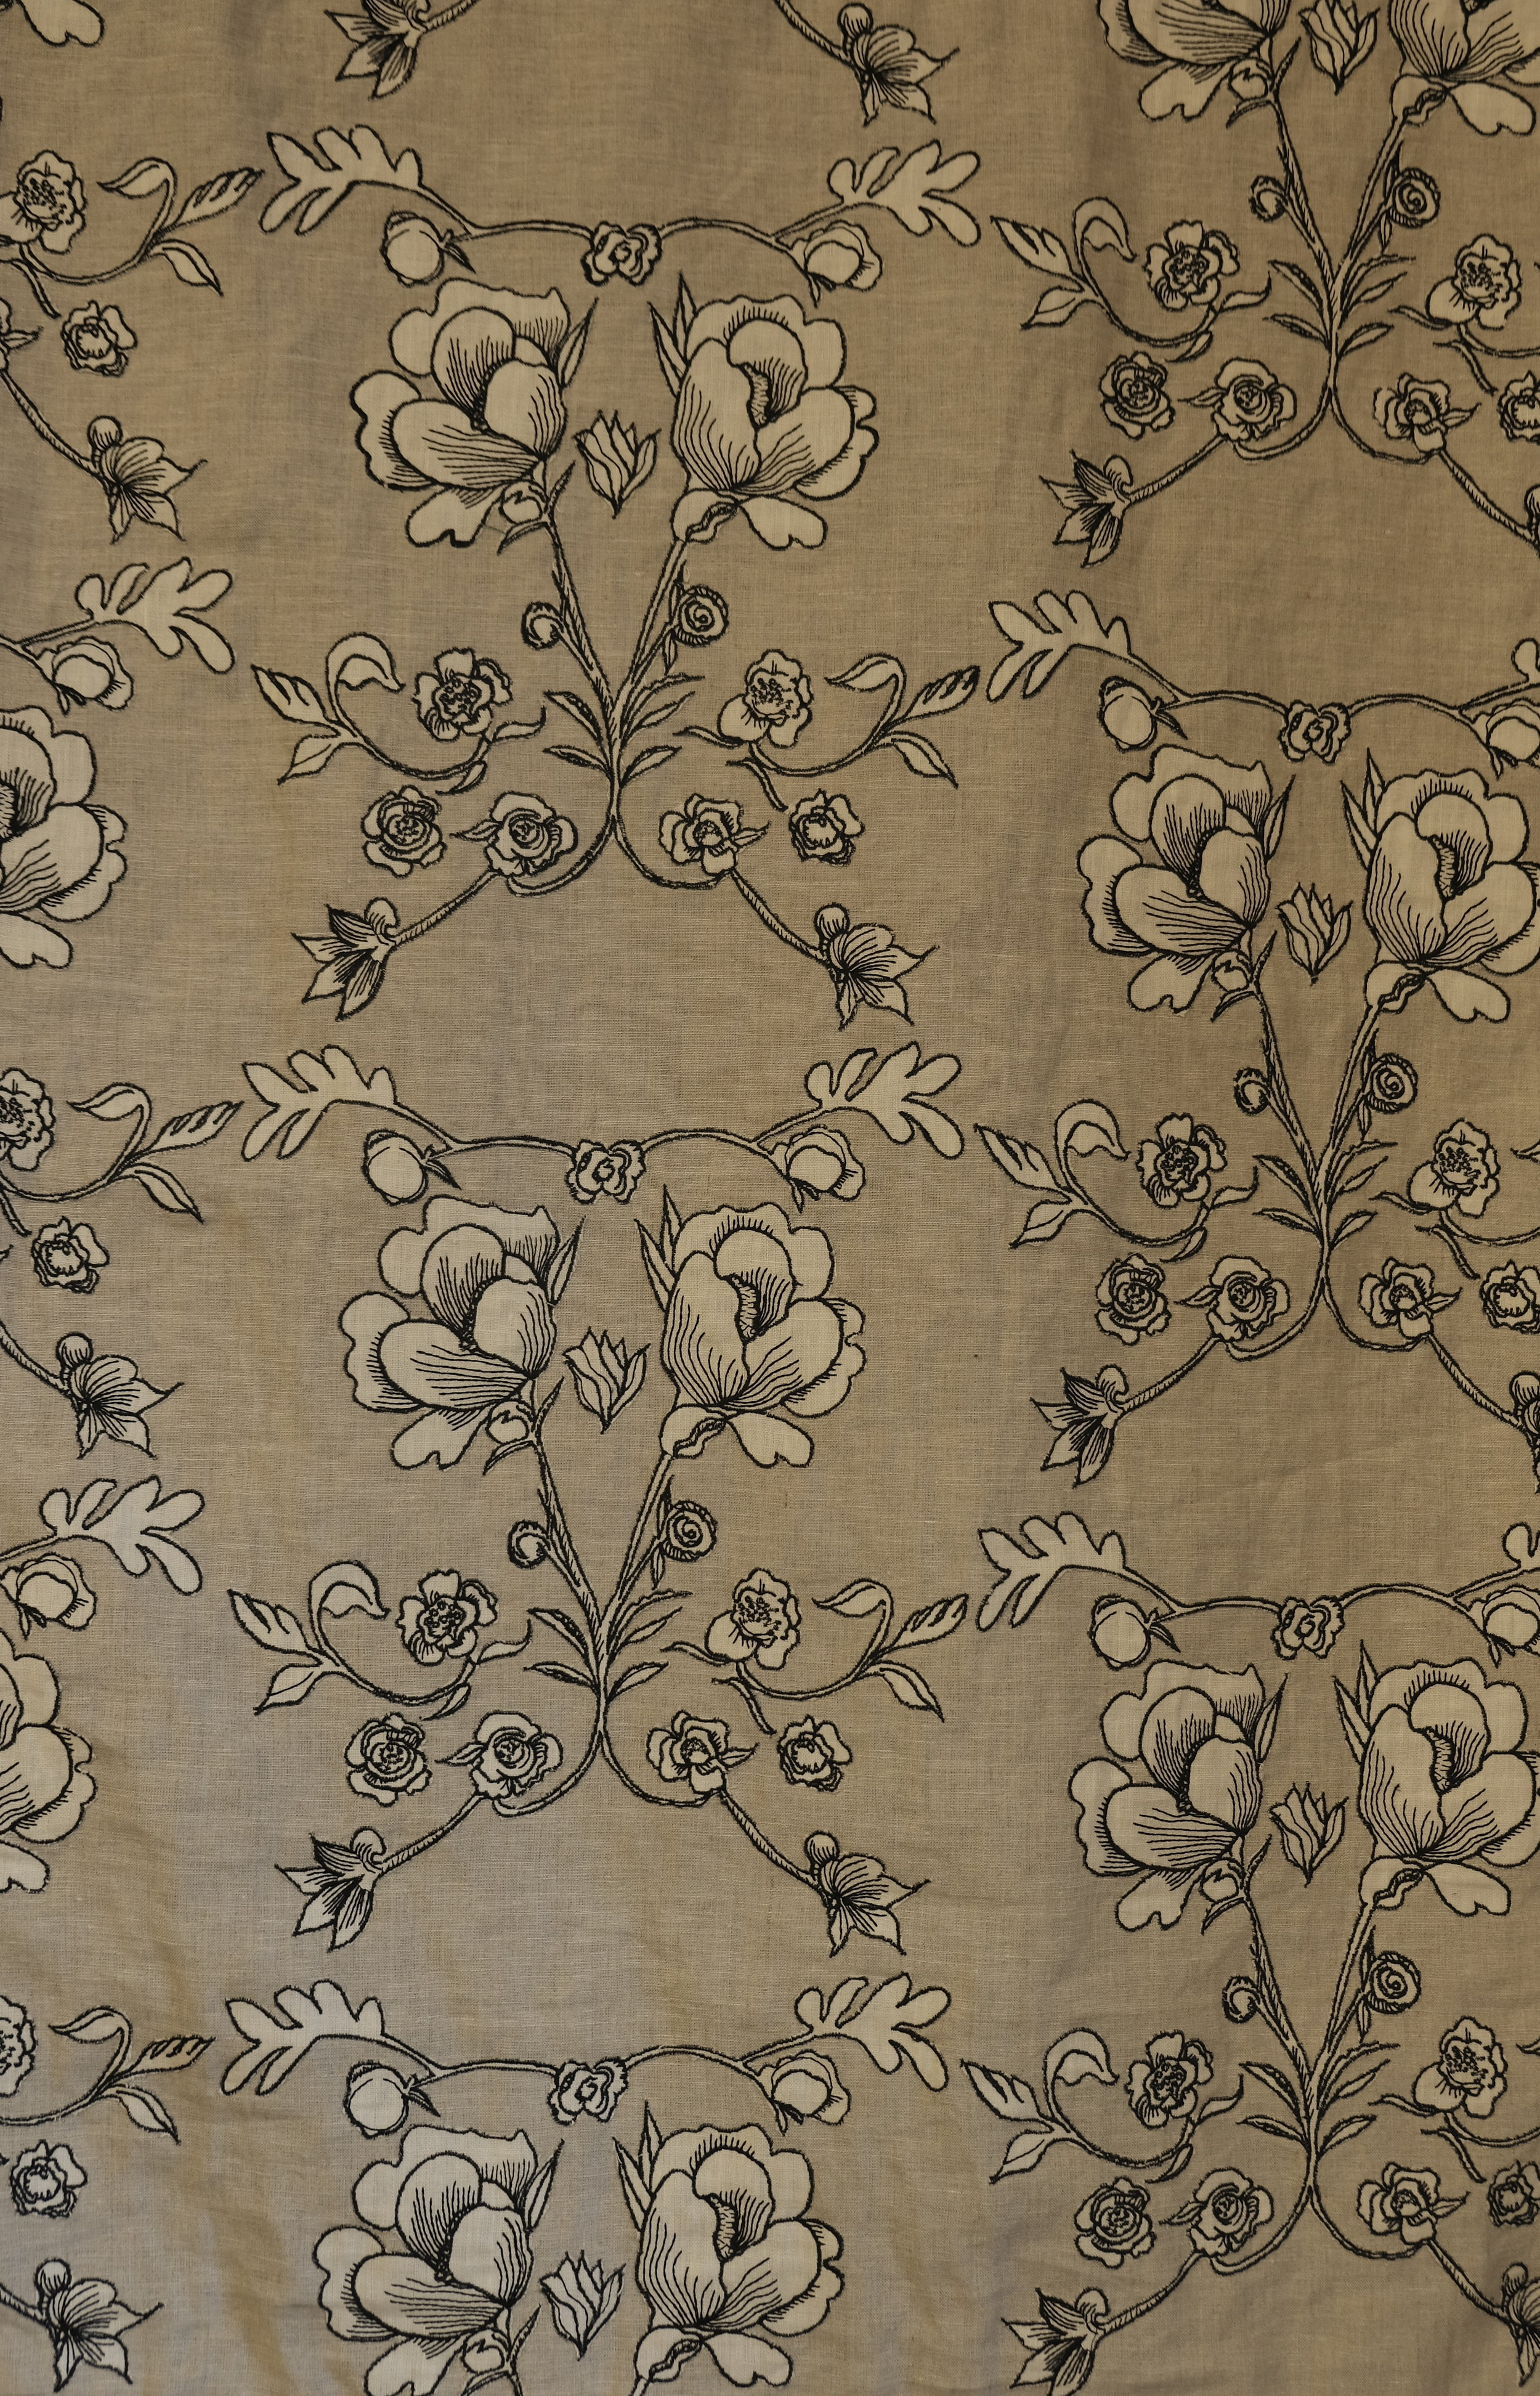 Pablo f601, embroidered applique on linen